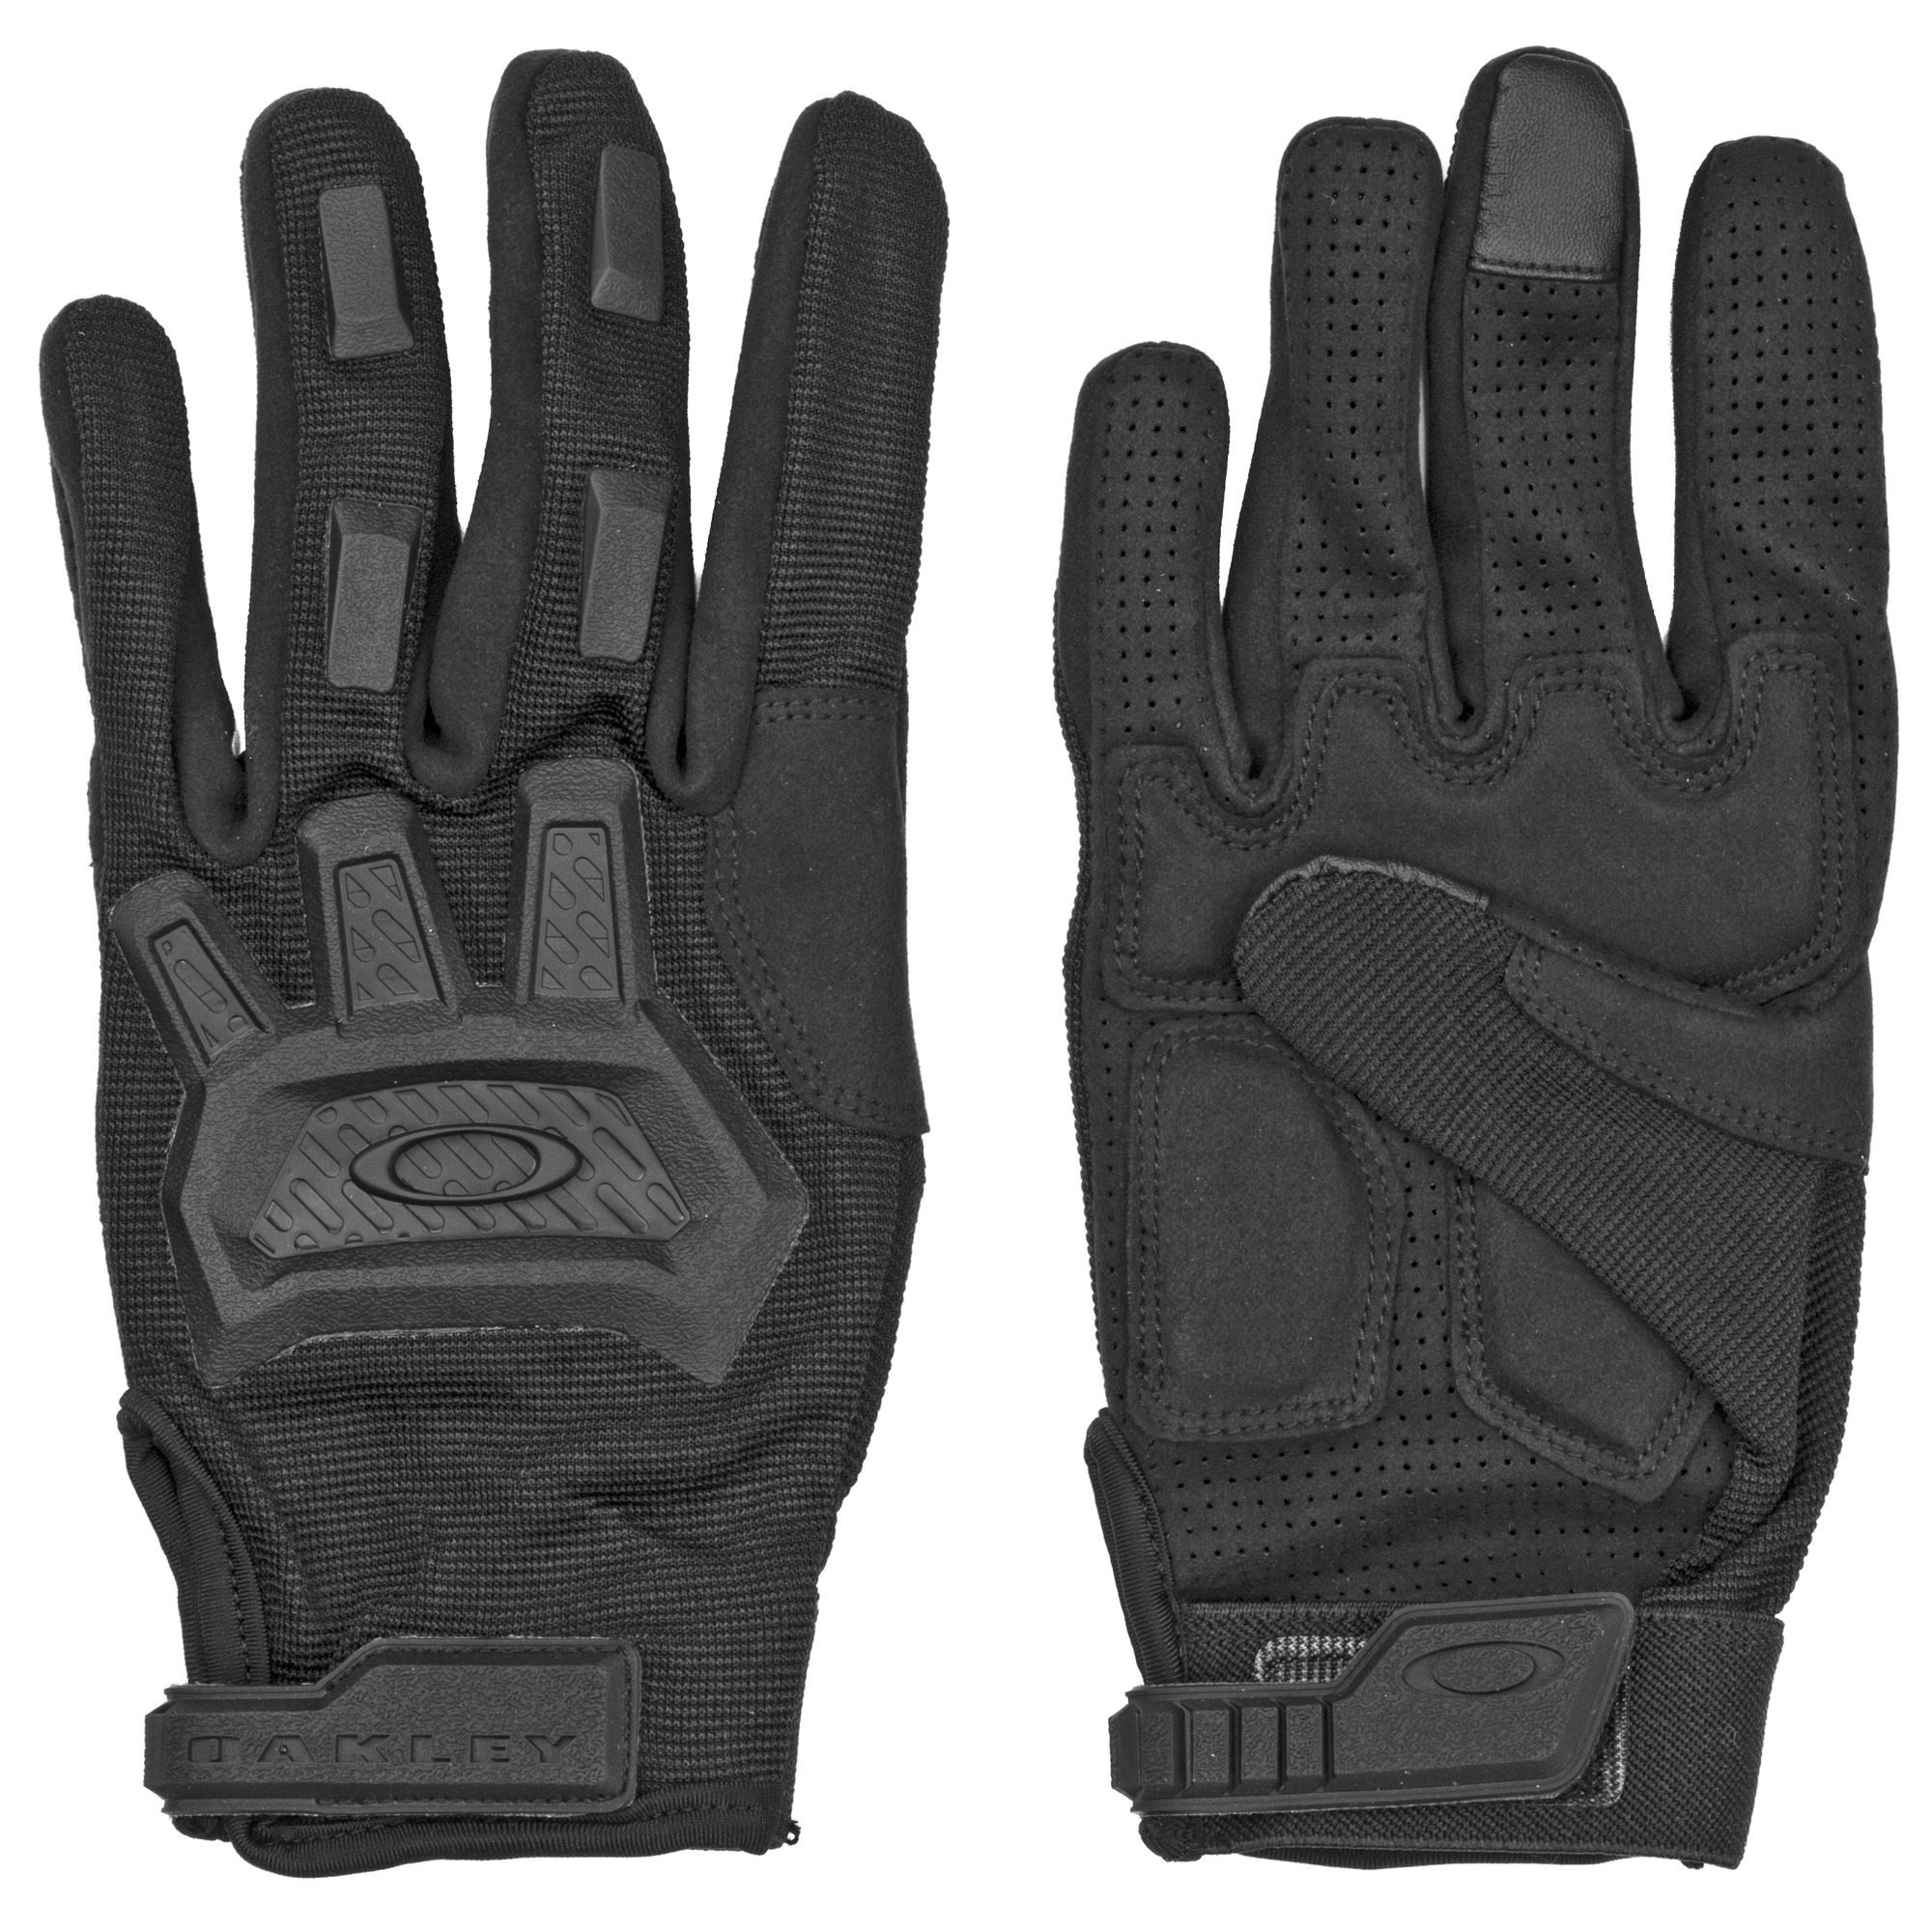 "The Flexion Glove features flexible molded TPR that protects the hand from impact and abrasion. It is made of 50% Polyester"" 36% Nylon"" 9% Elastane"" and 5% Rubber."